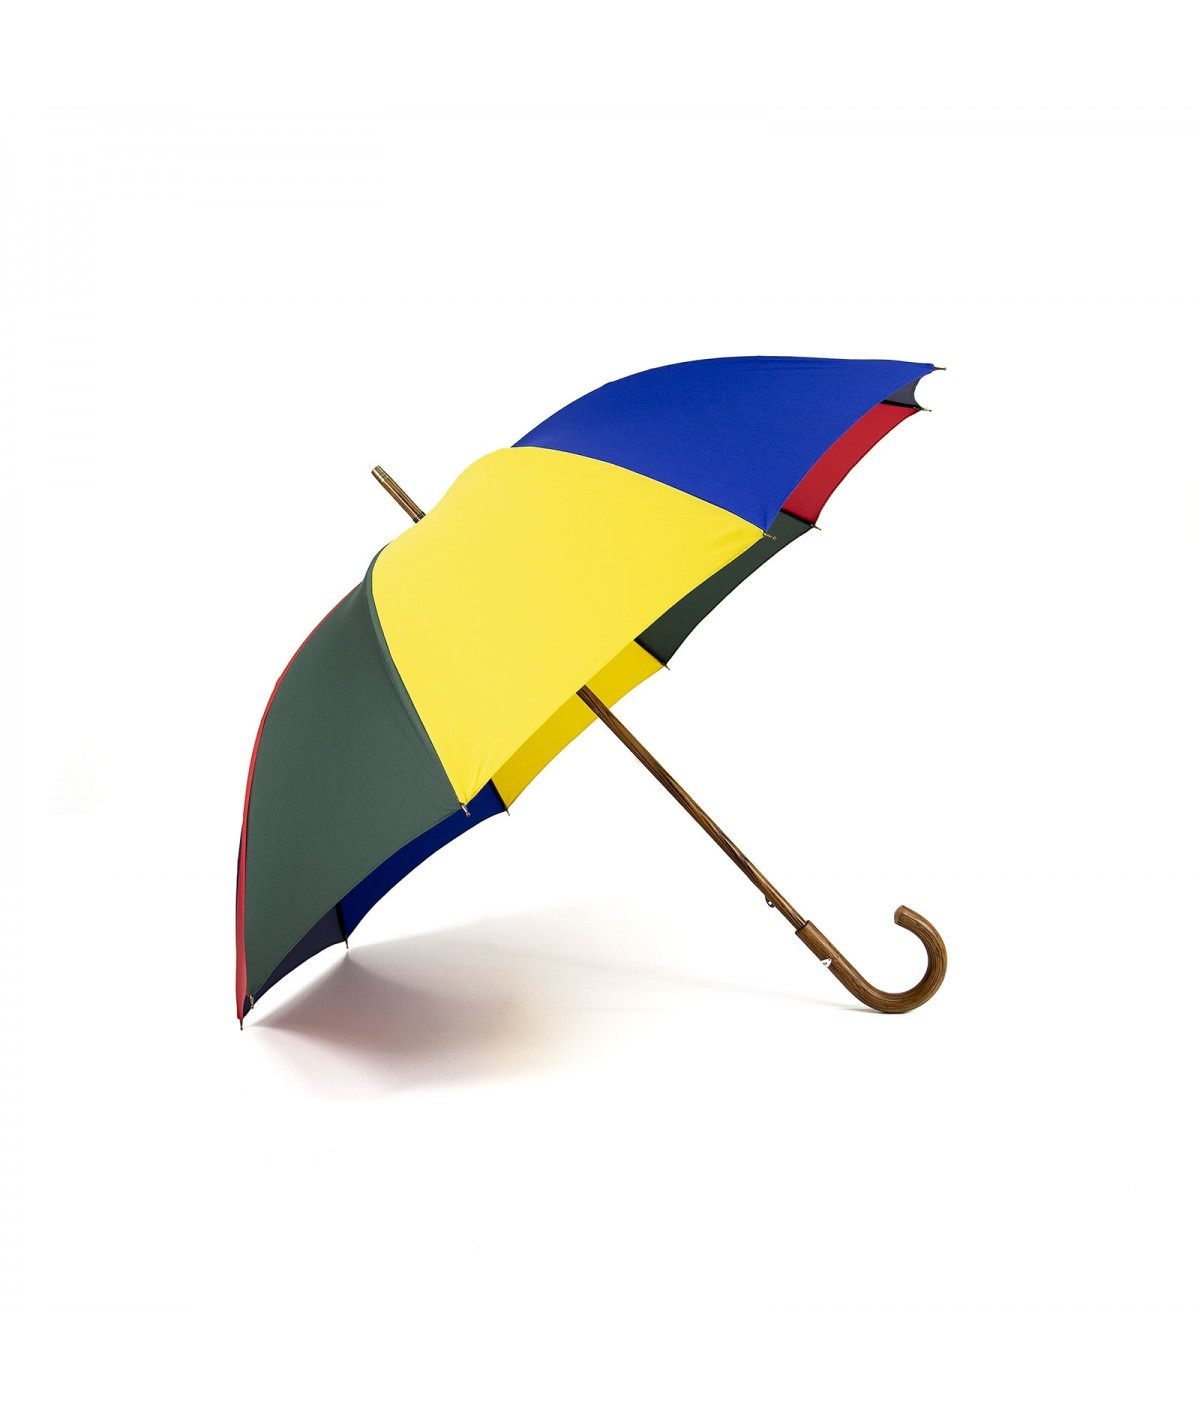 "→ Parapluie ""Le Berger"" Multicolore - Maison Pierre Vaux francique traditionnellement à la main en France"